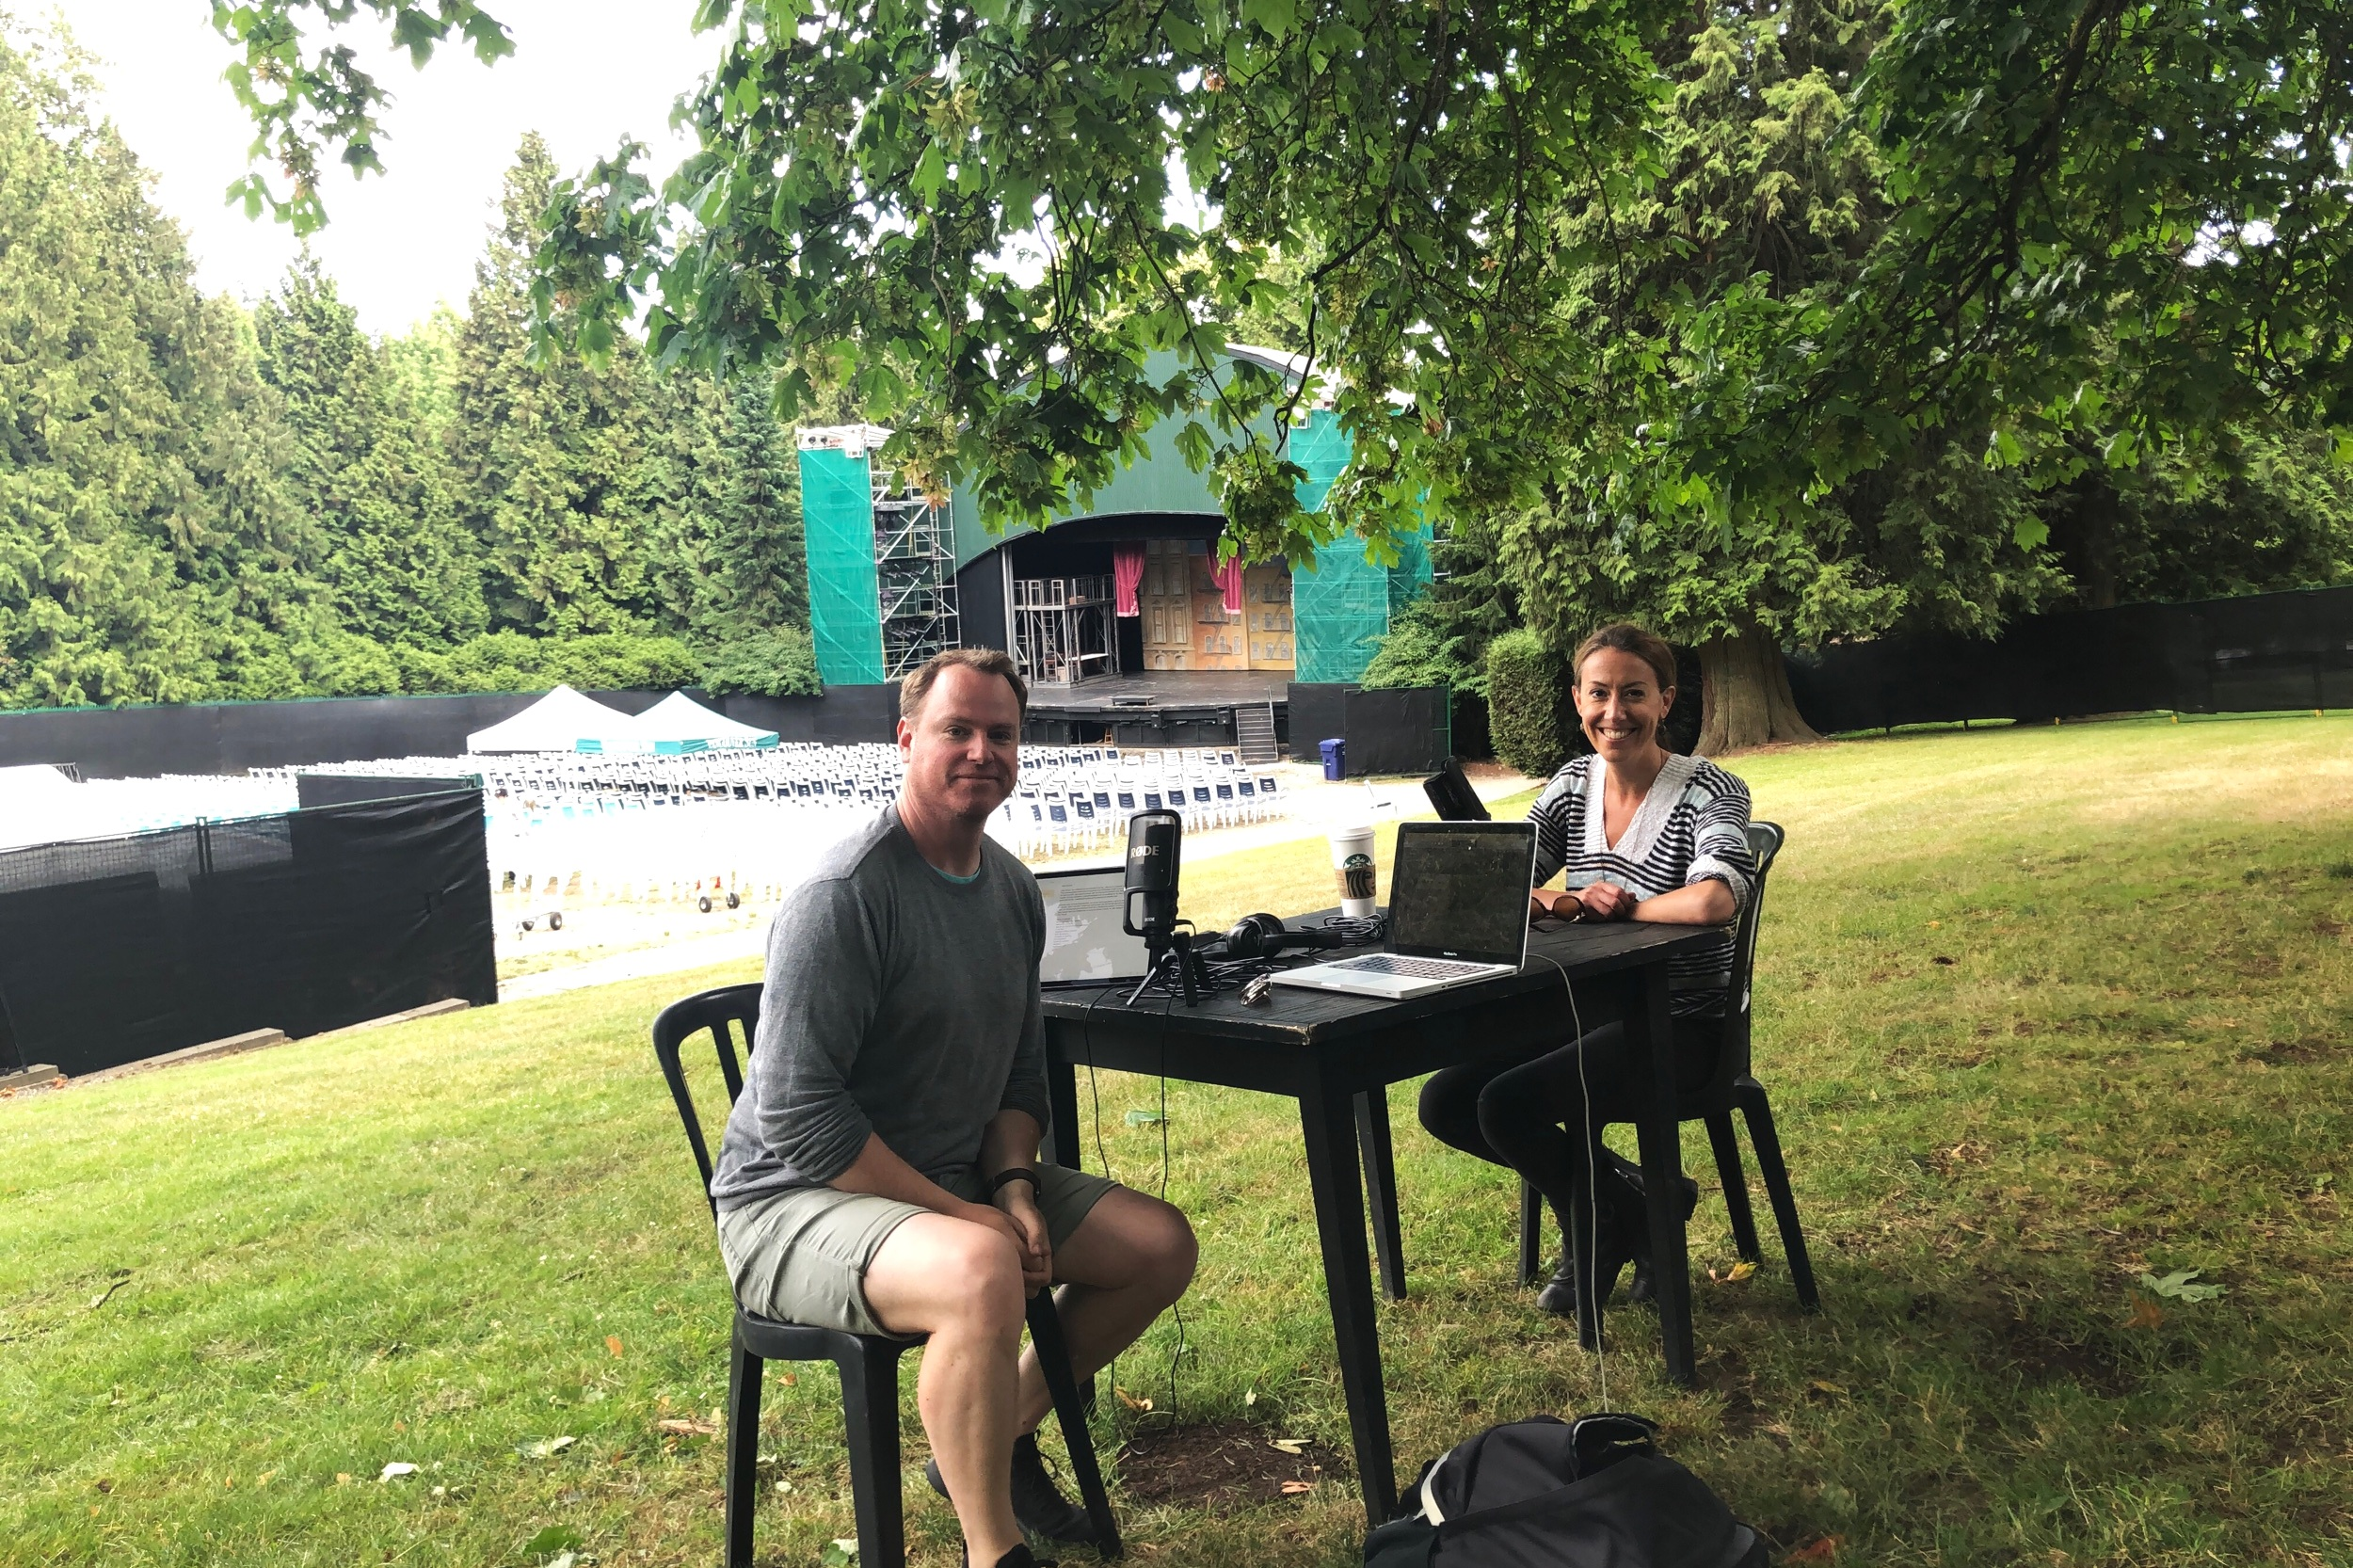 Julie Tomaino & Host Christopher King - On location at Theatre Under the Stars - Malkin Bowl, Stanley Park.